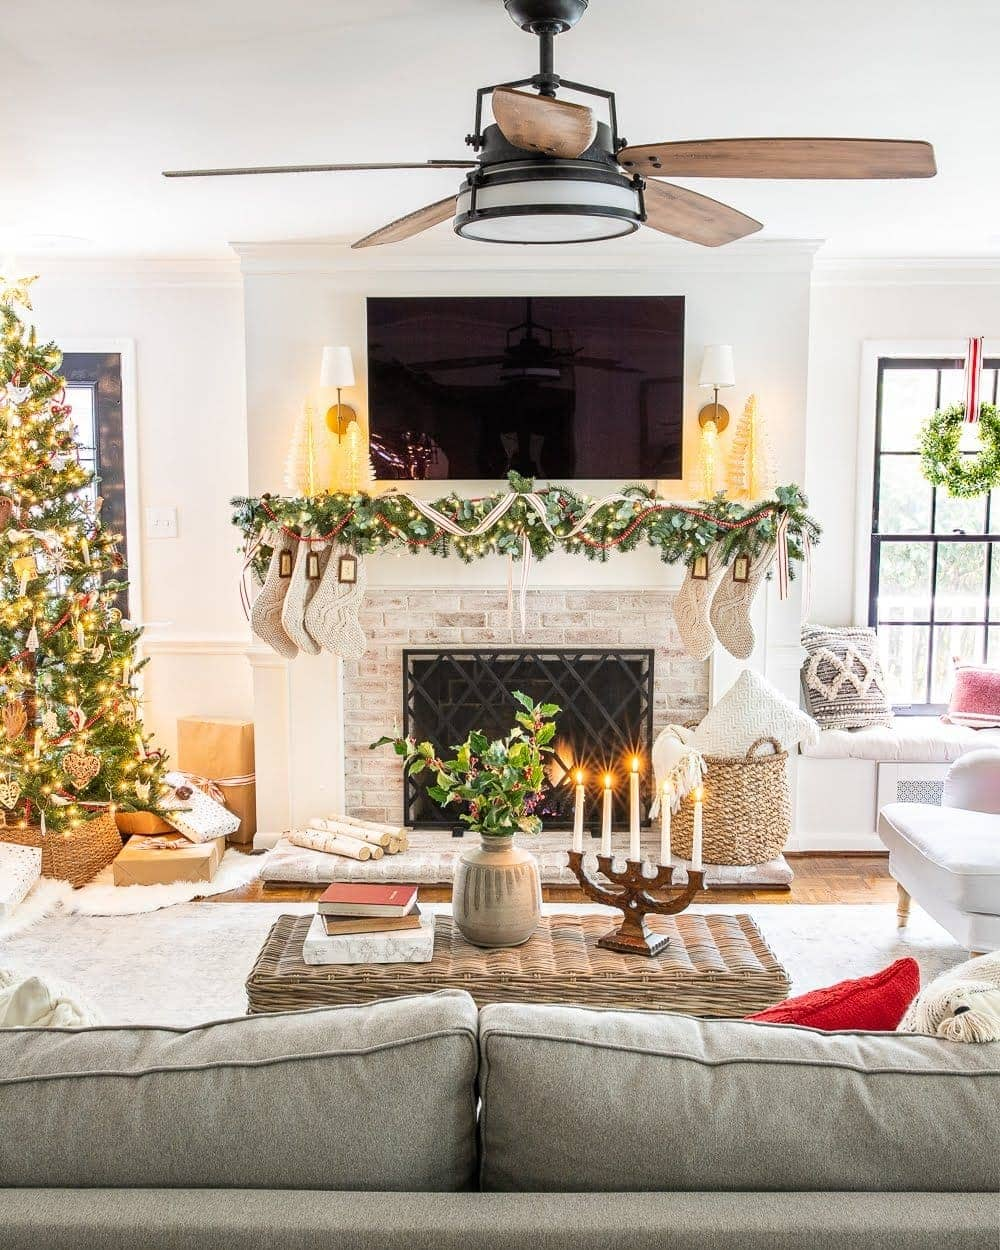 Christmas decor ideas | Christmas mantel with TV and living room